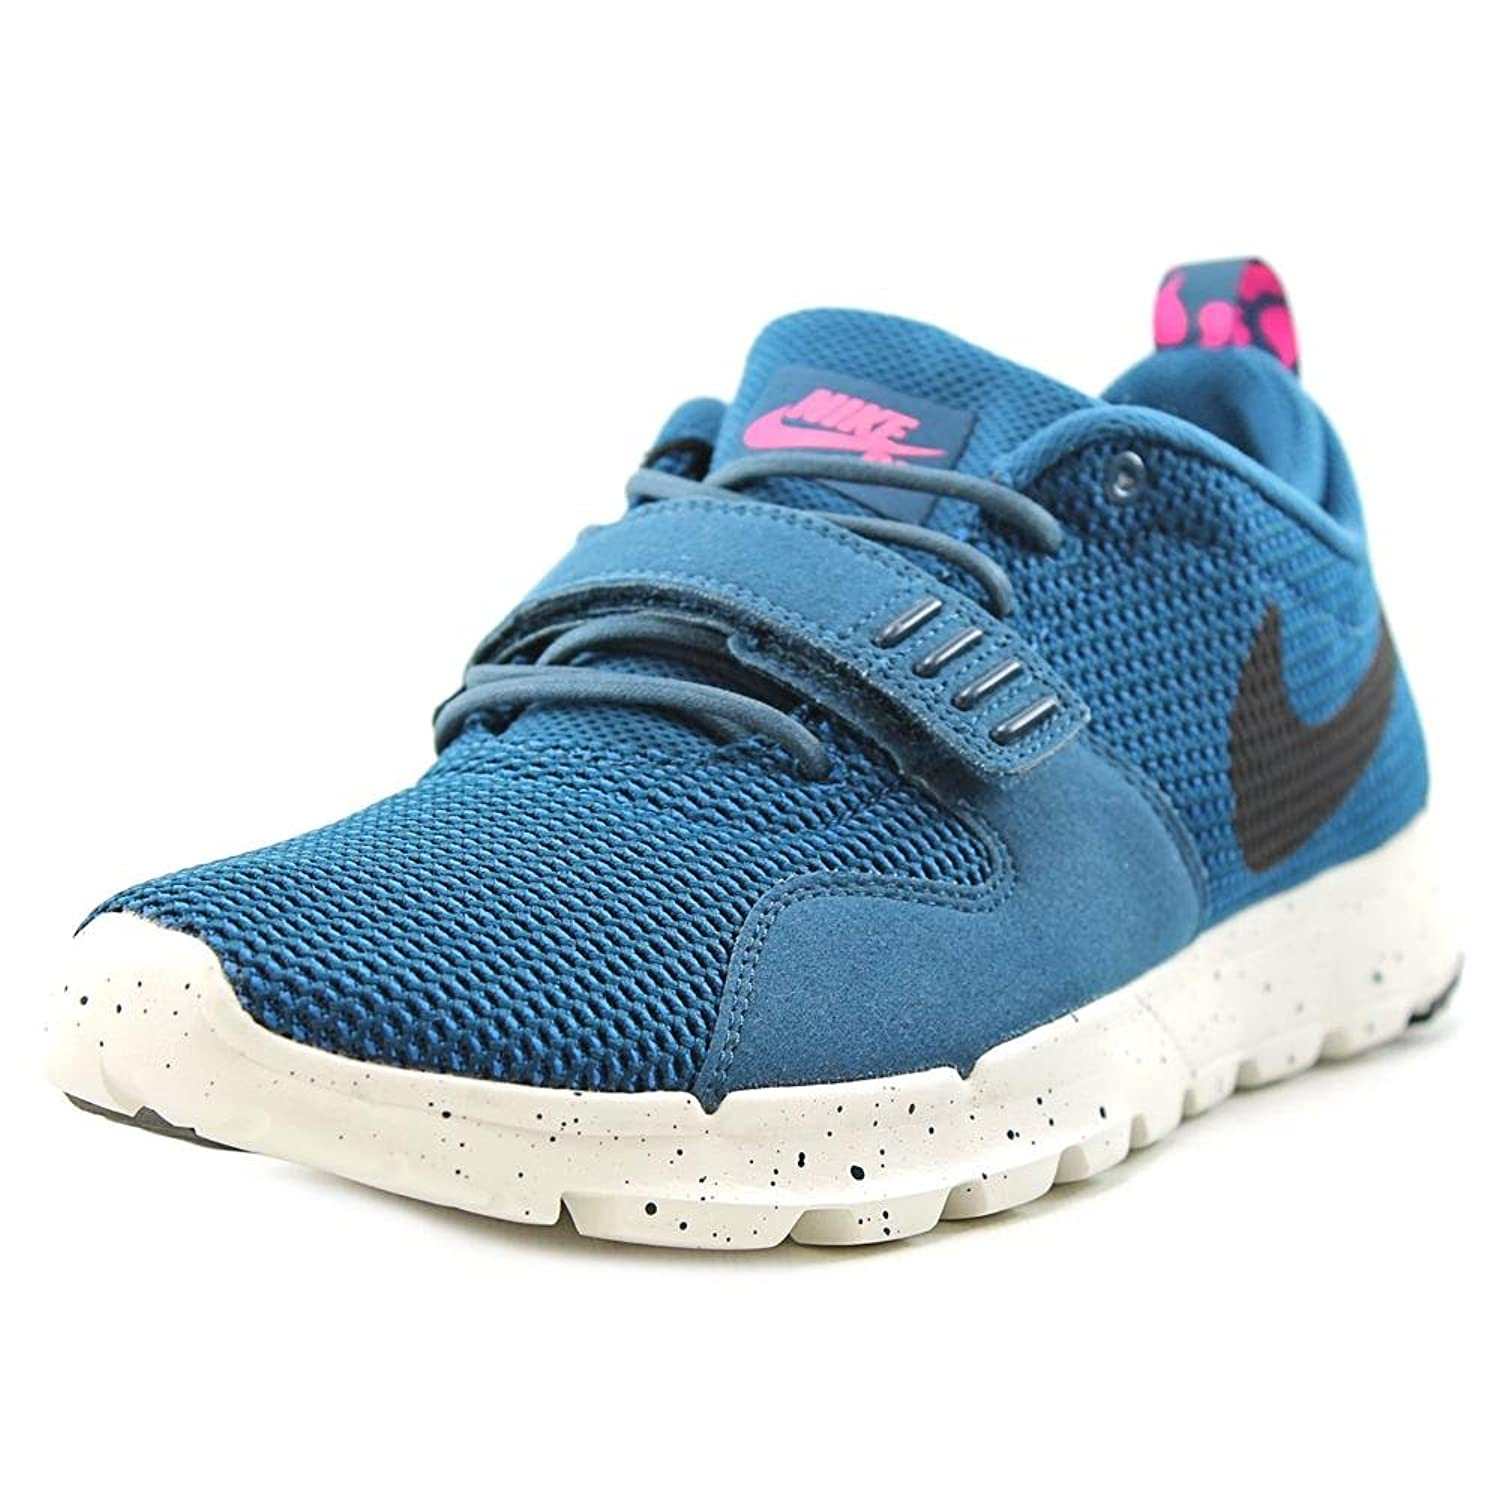 NIKE SB Trainerendor Mens Multi-Sport Hiking Outdoor Shoes